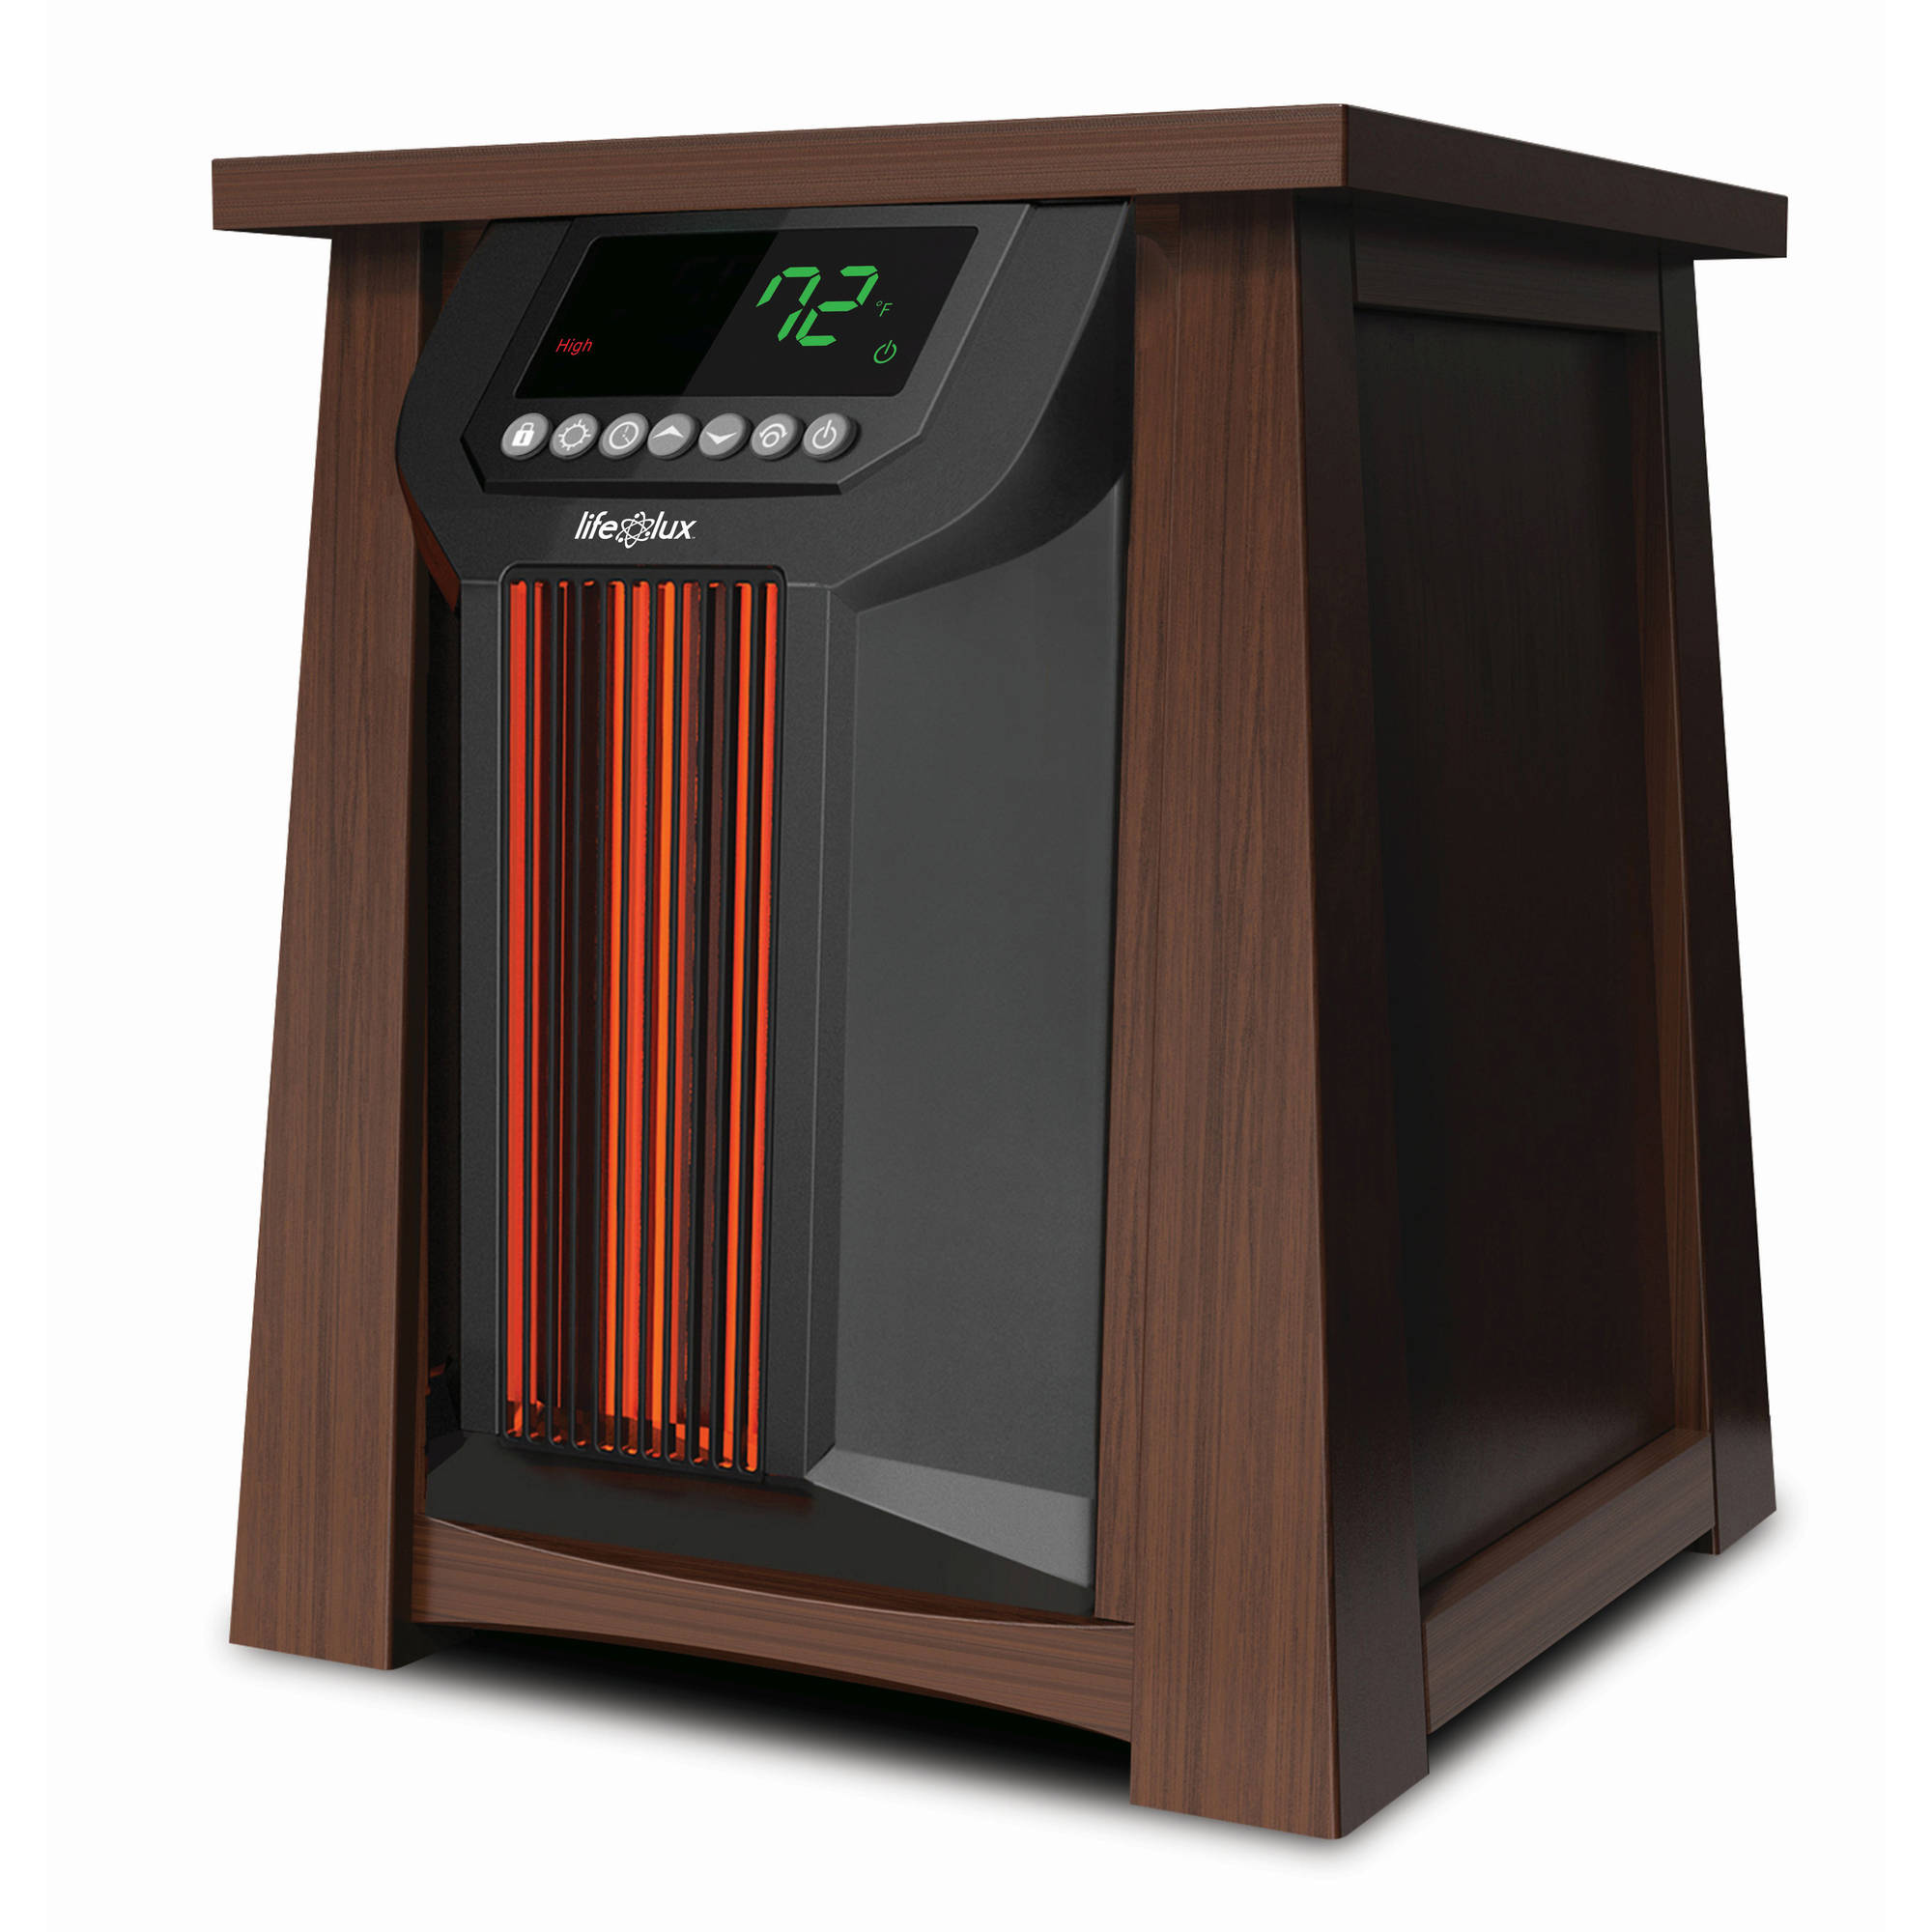 Lifelux Infrared Electric Heater, Wood